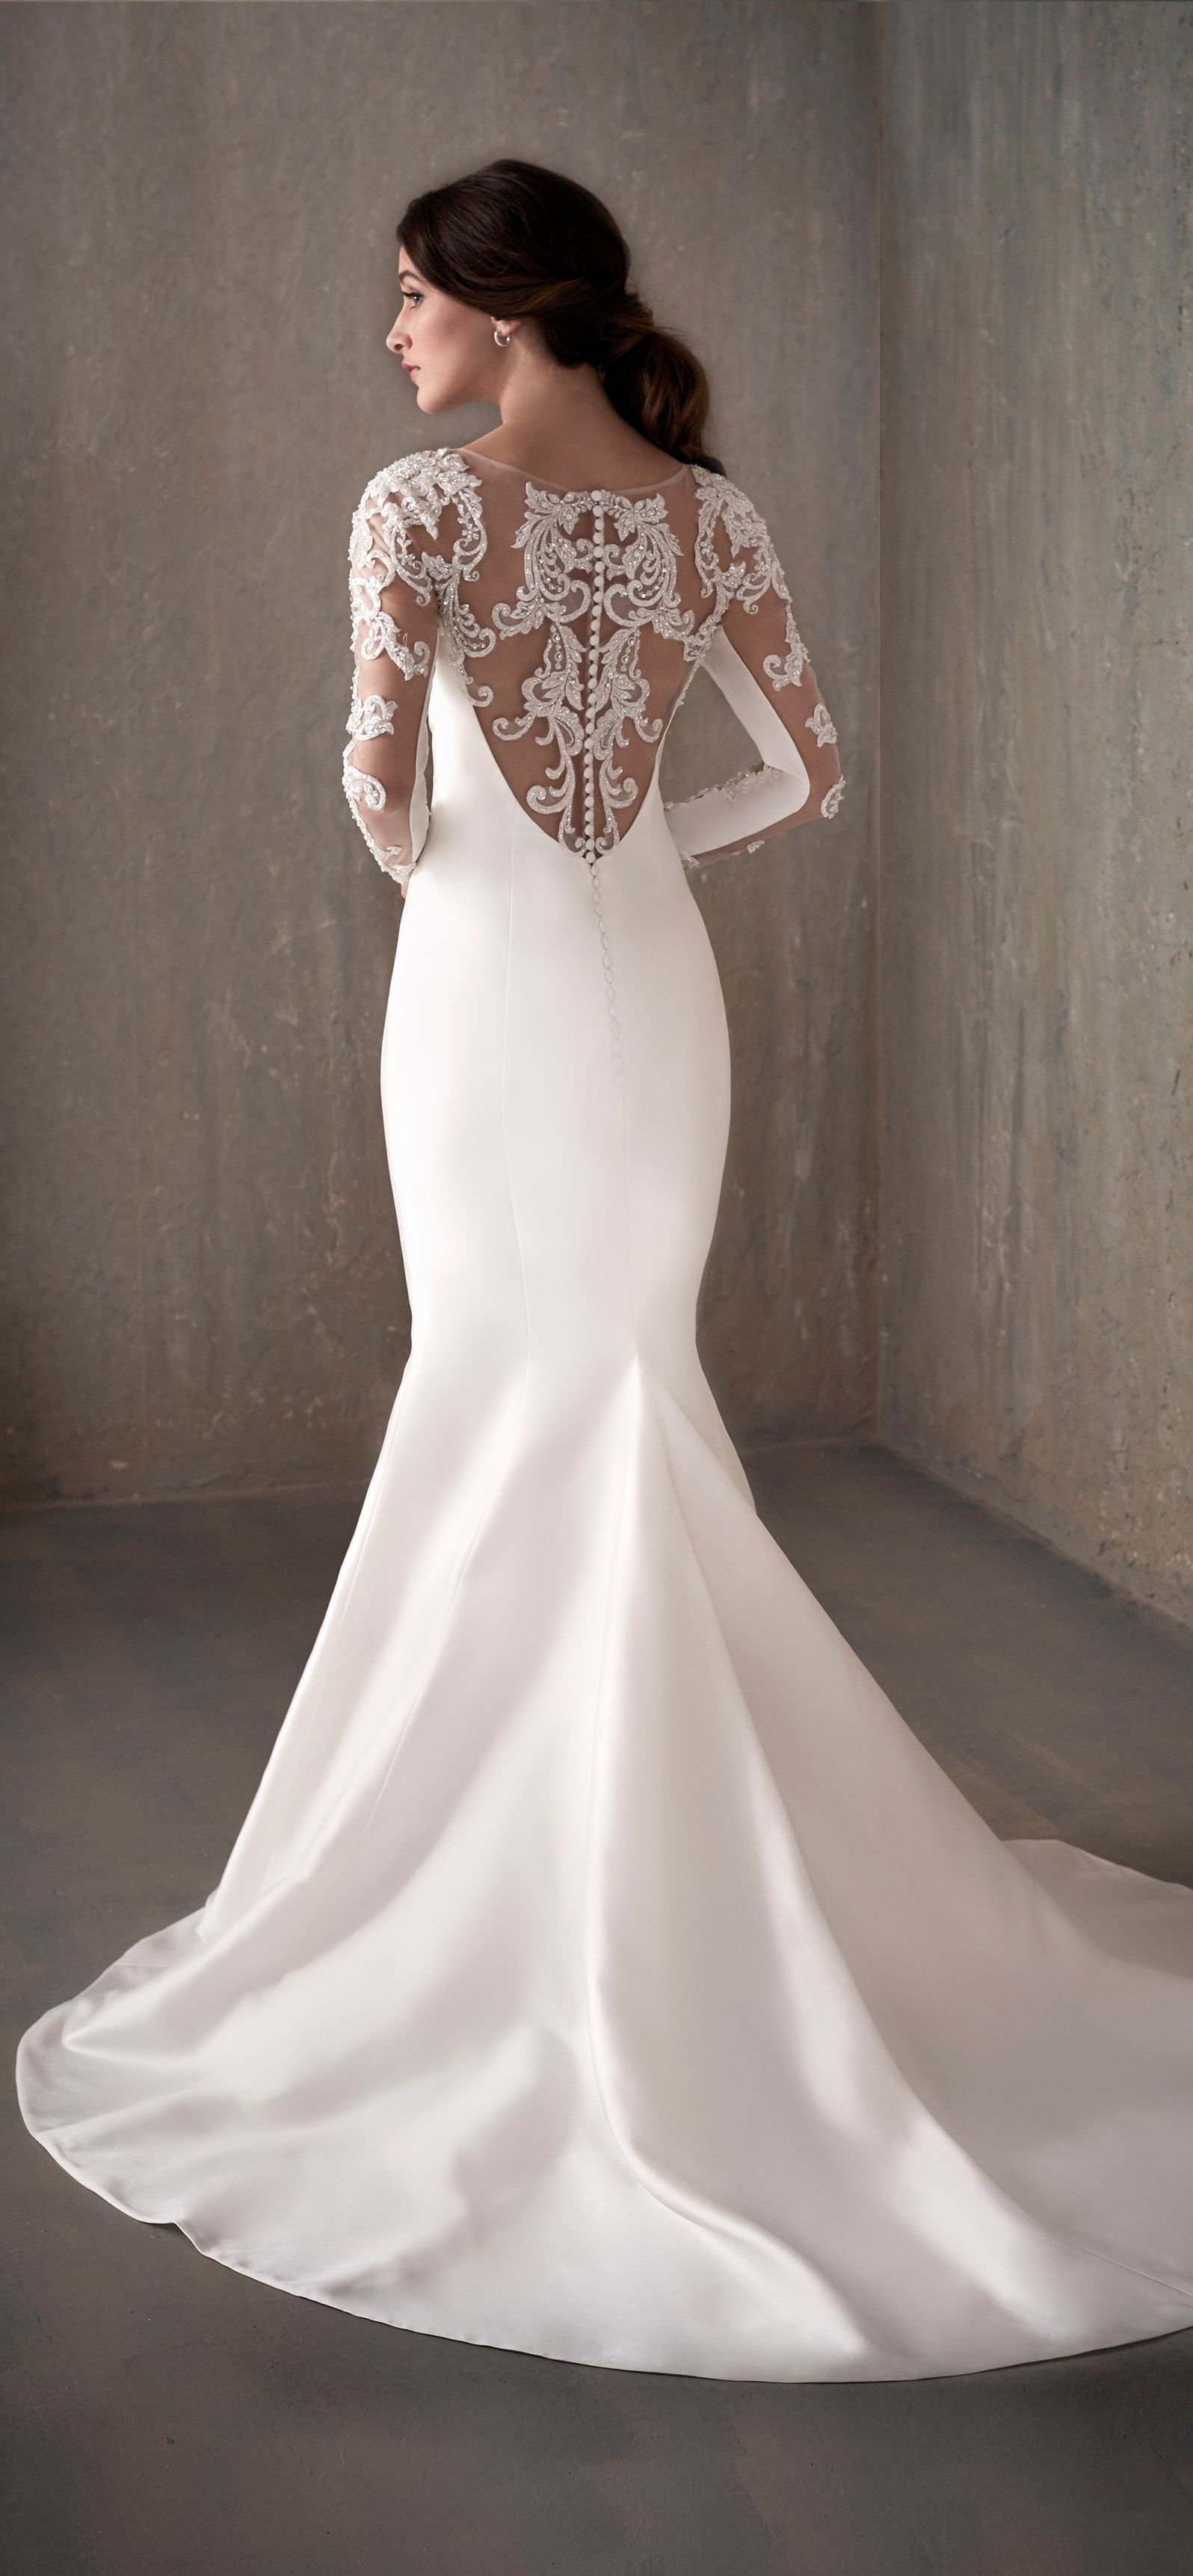 Simple Long Sleeve Trumpet Wedding Dress With Lace Illusion Neckline Tight Wedding Dress Wedding Dresses Trendy Wedding Dresses